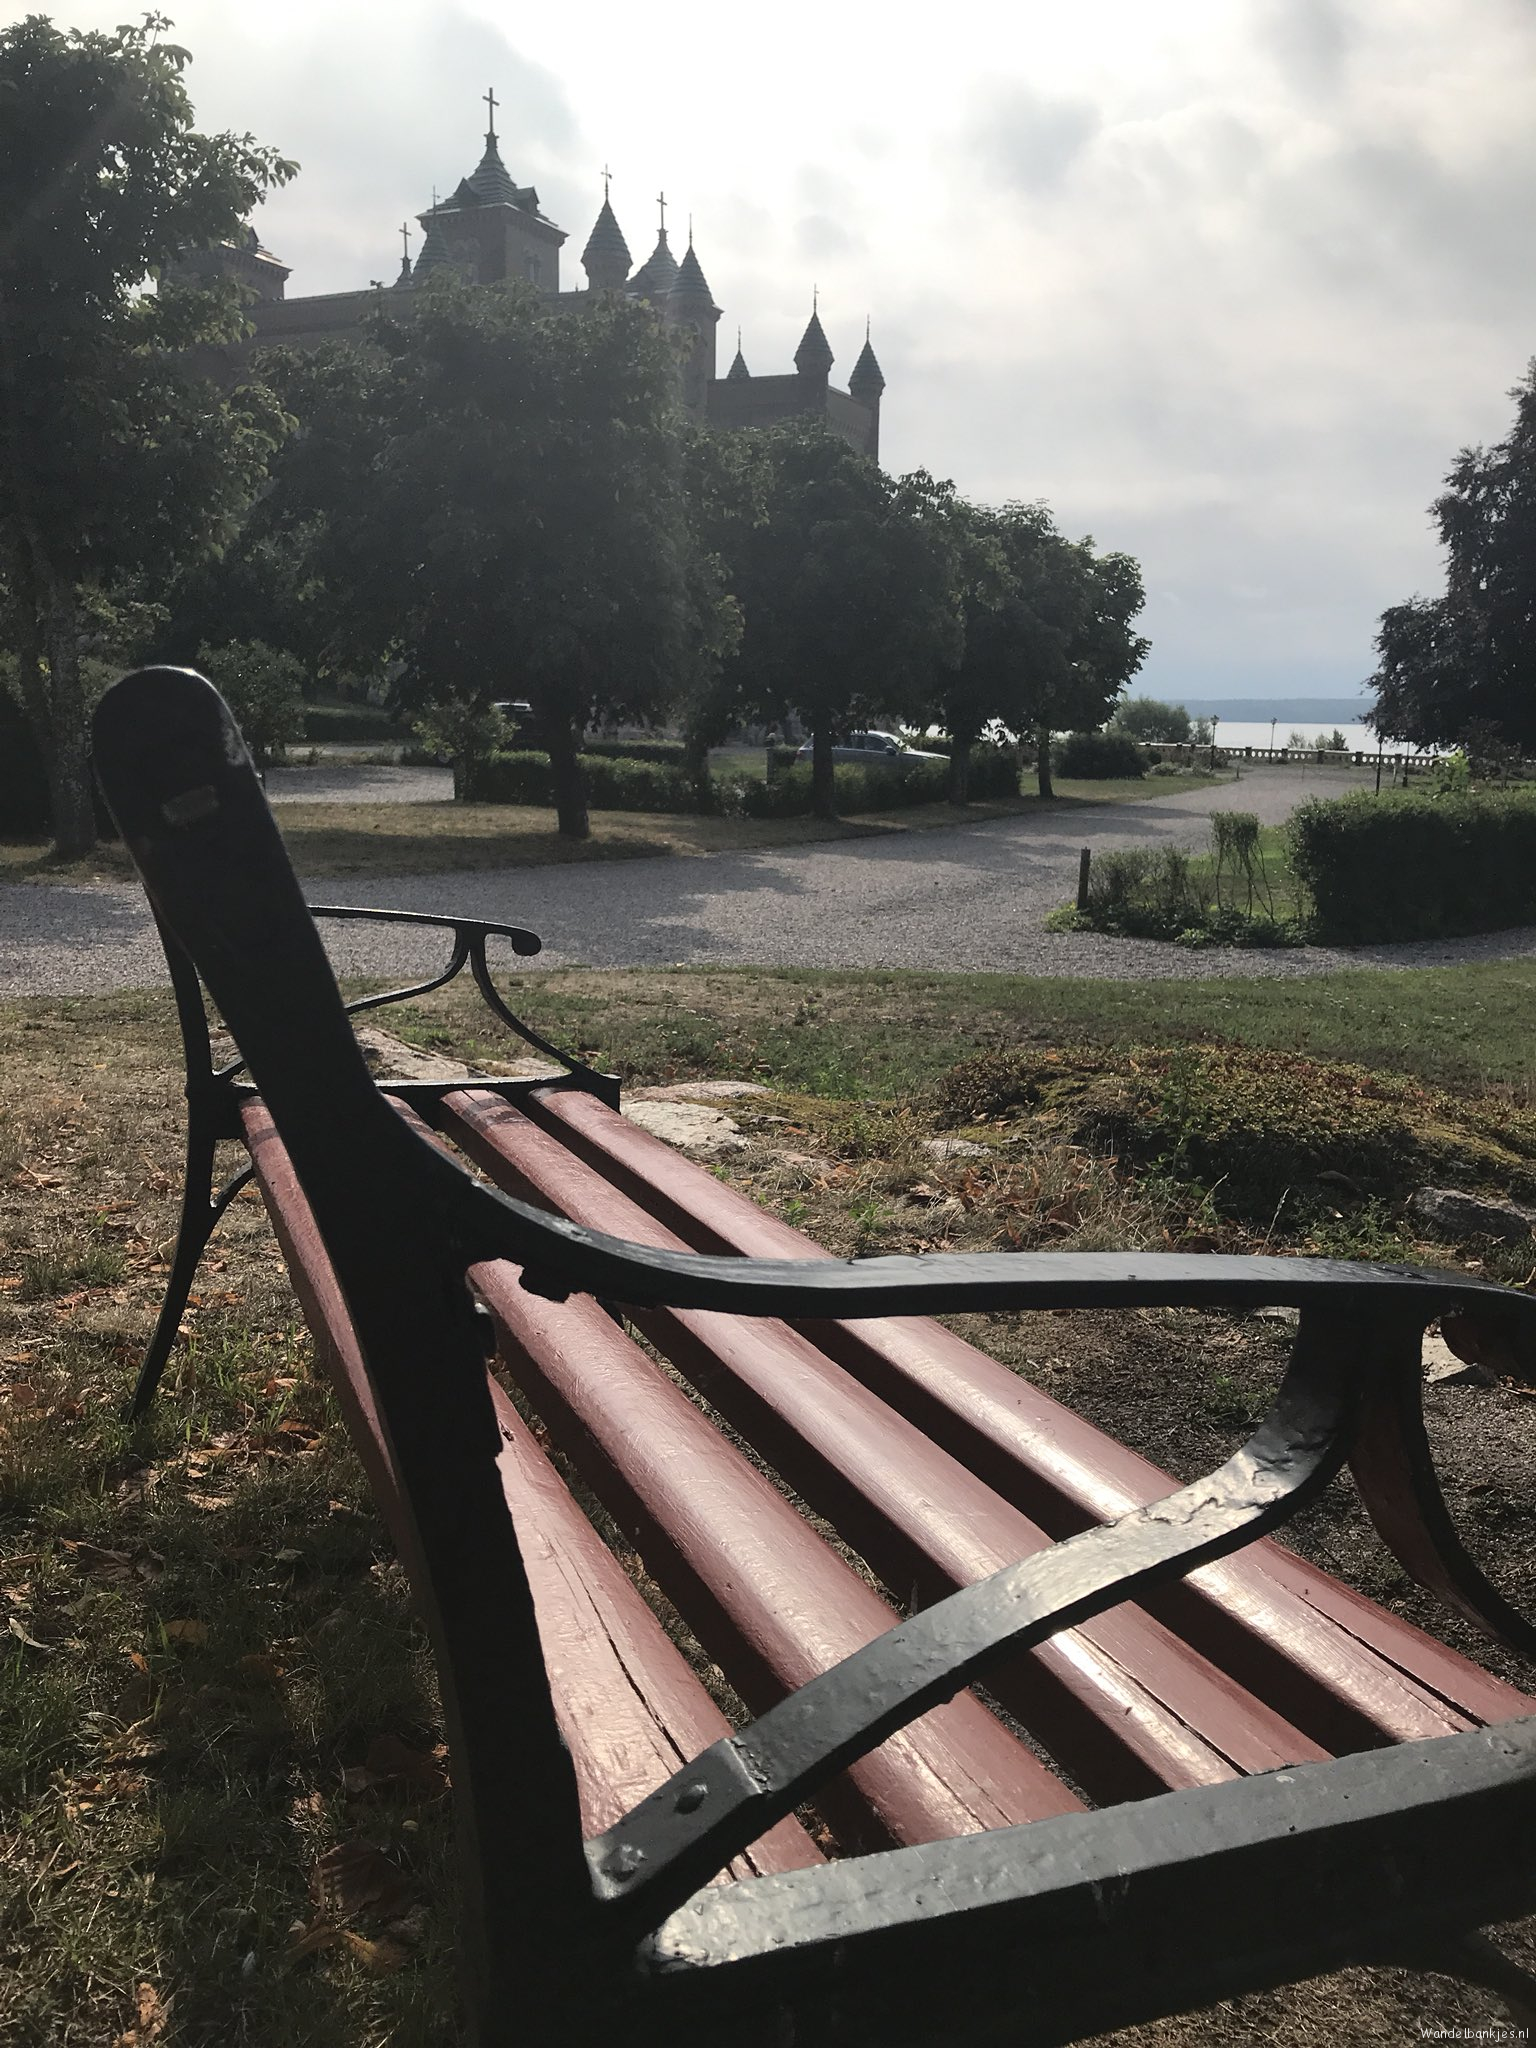 rt-dujo070-walking-benches-walkersbenches-a-walking-bench-at-a-special-lock-stora-sundby-sweden-https-t-co-cypcfa8klh